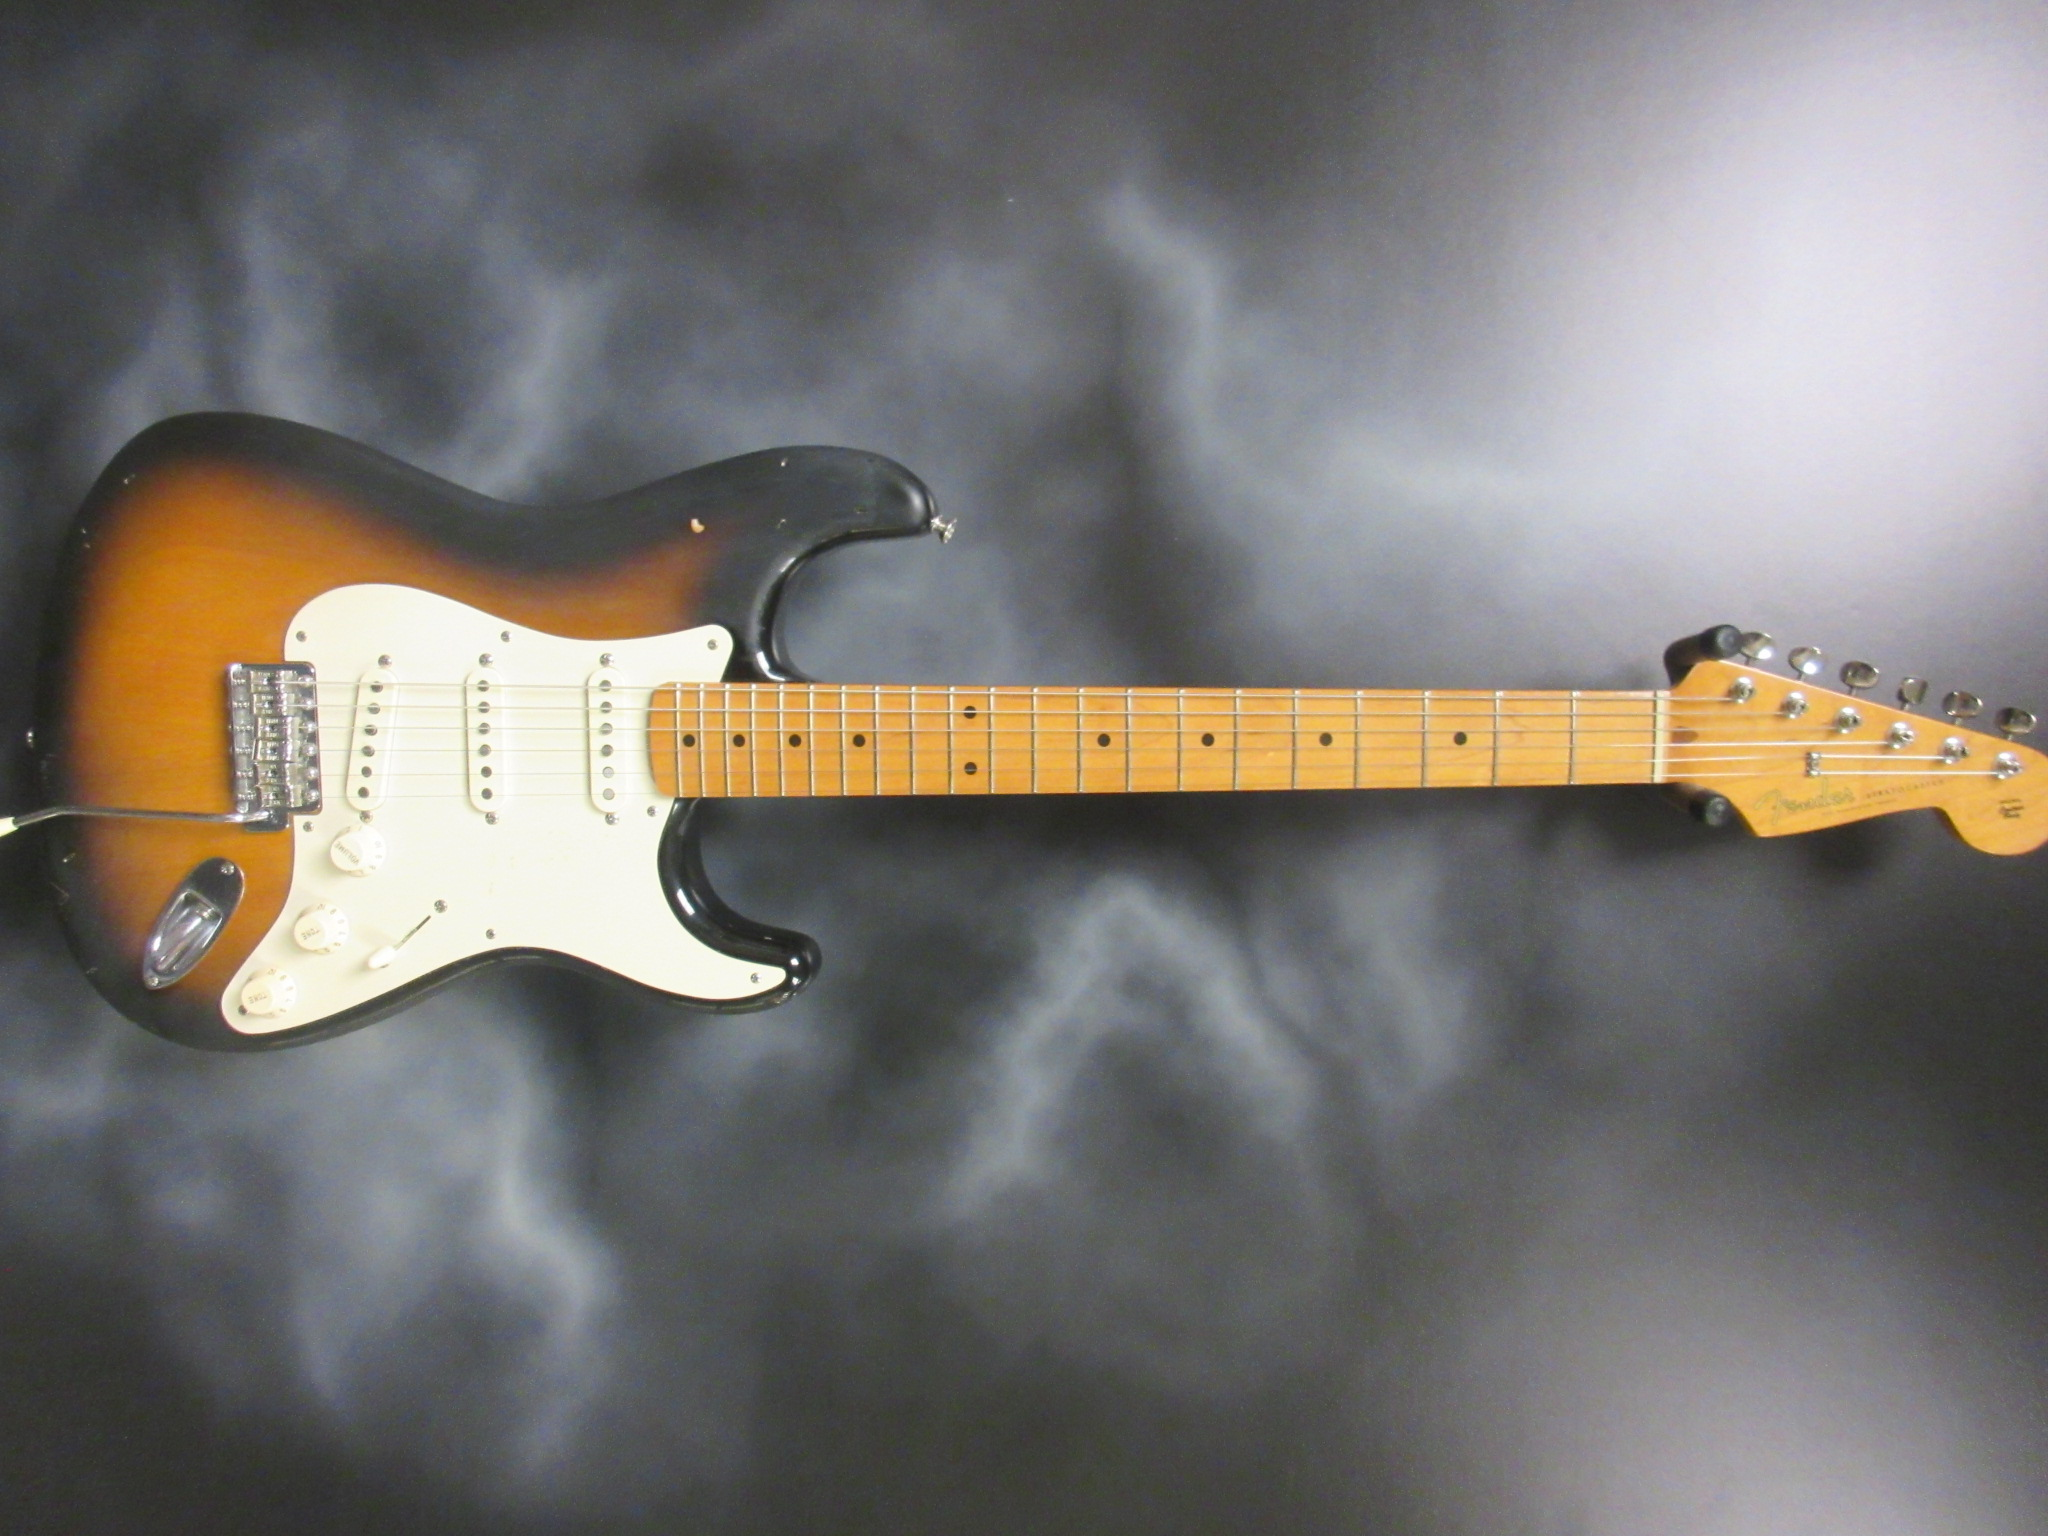 Fender - Classic player 50's stratocaster